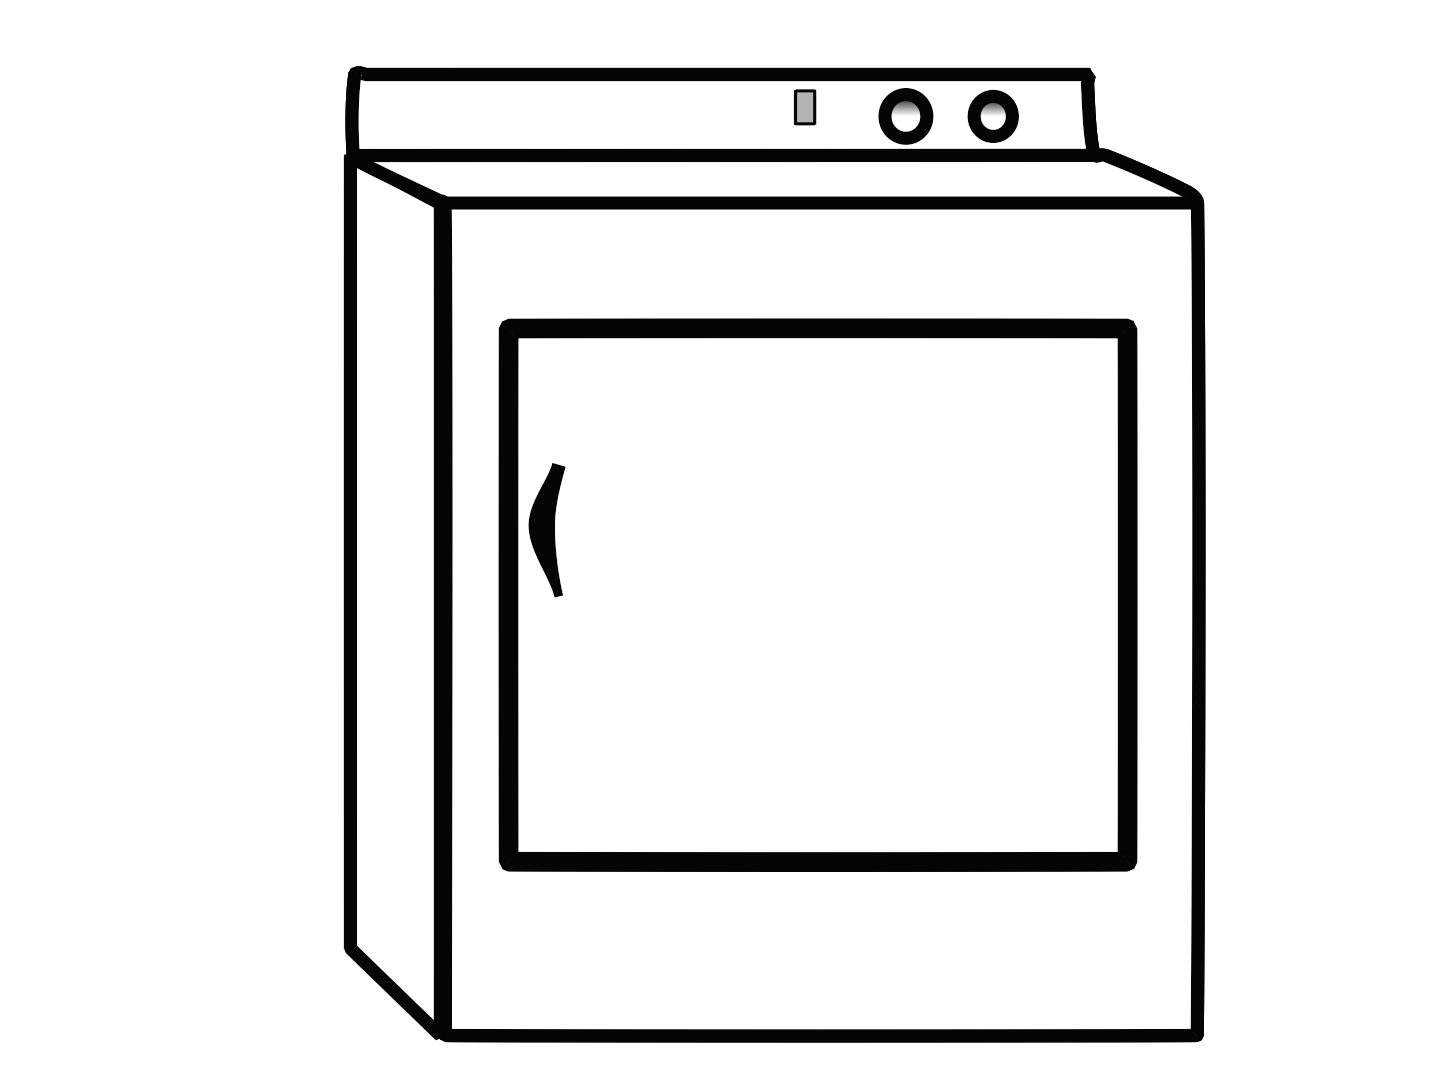 Images For Washing Machine And Dryer Clip Art.